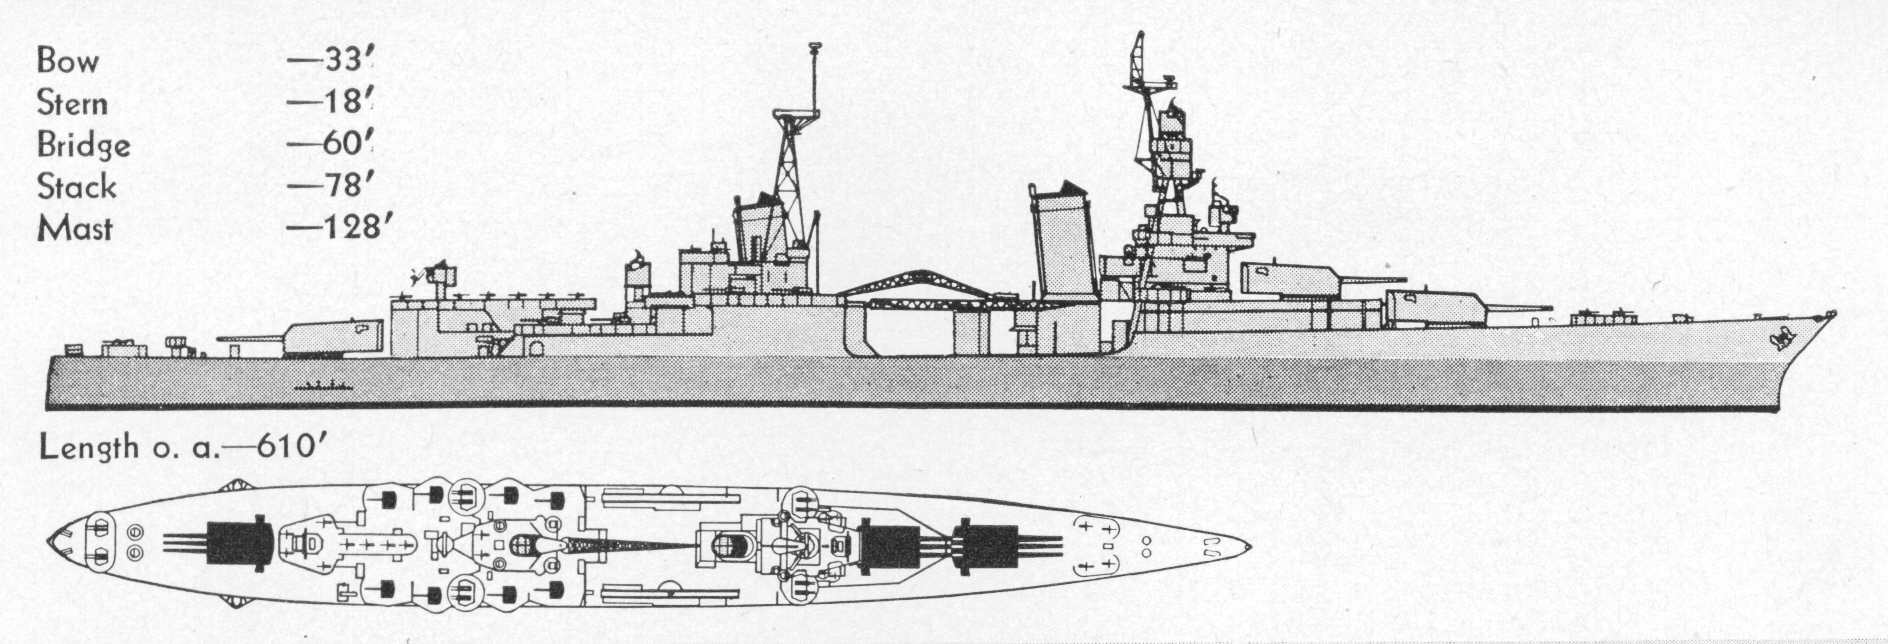 I Maxed Out My Tripod Webpage Space With Ship Drawings And Am Moving Them To Make So See Also Coatneyhistory For ONI